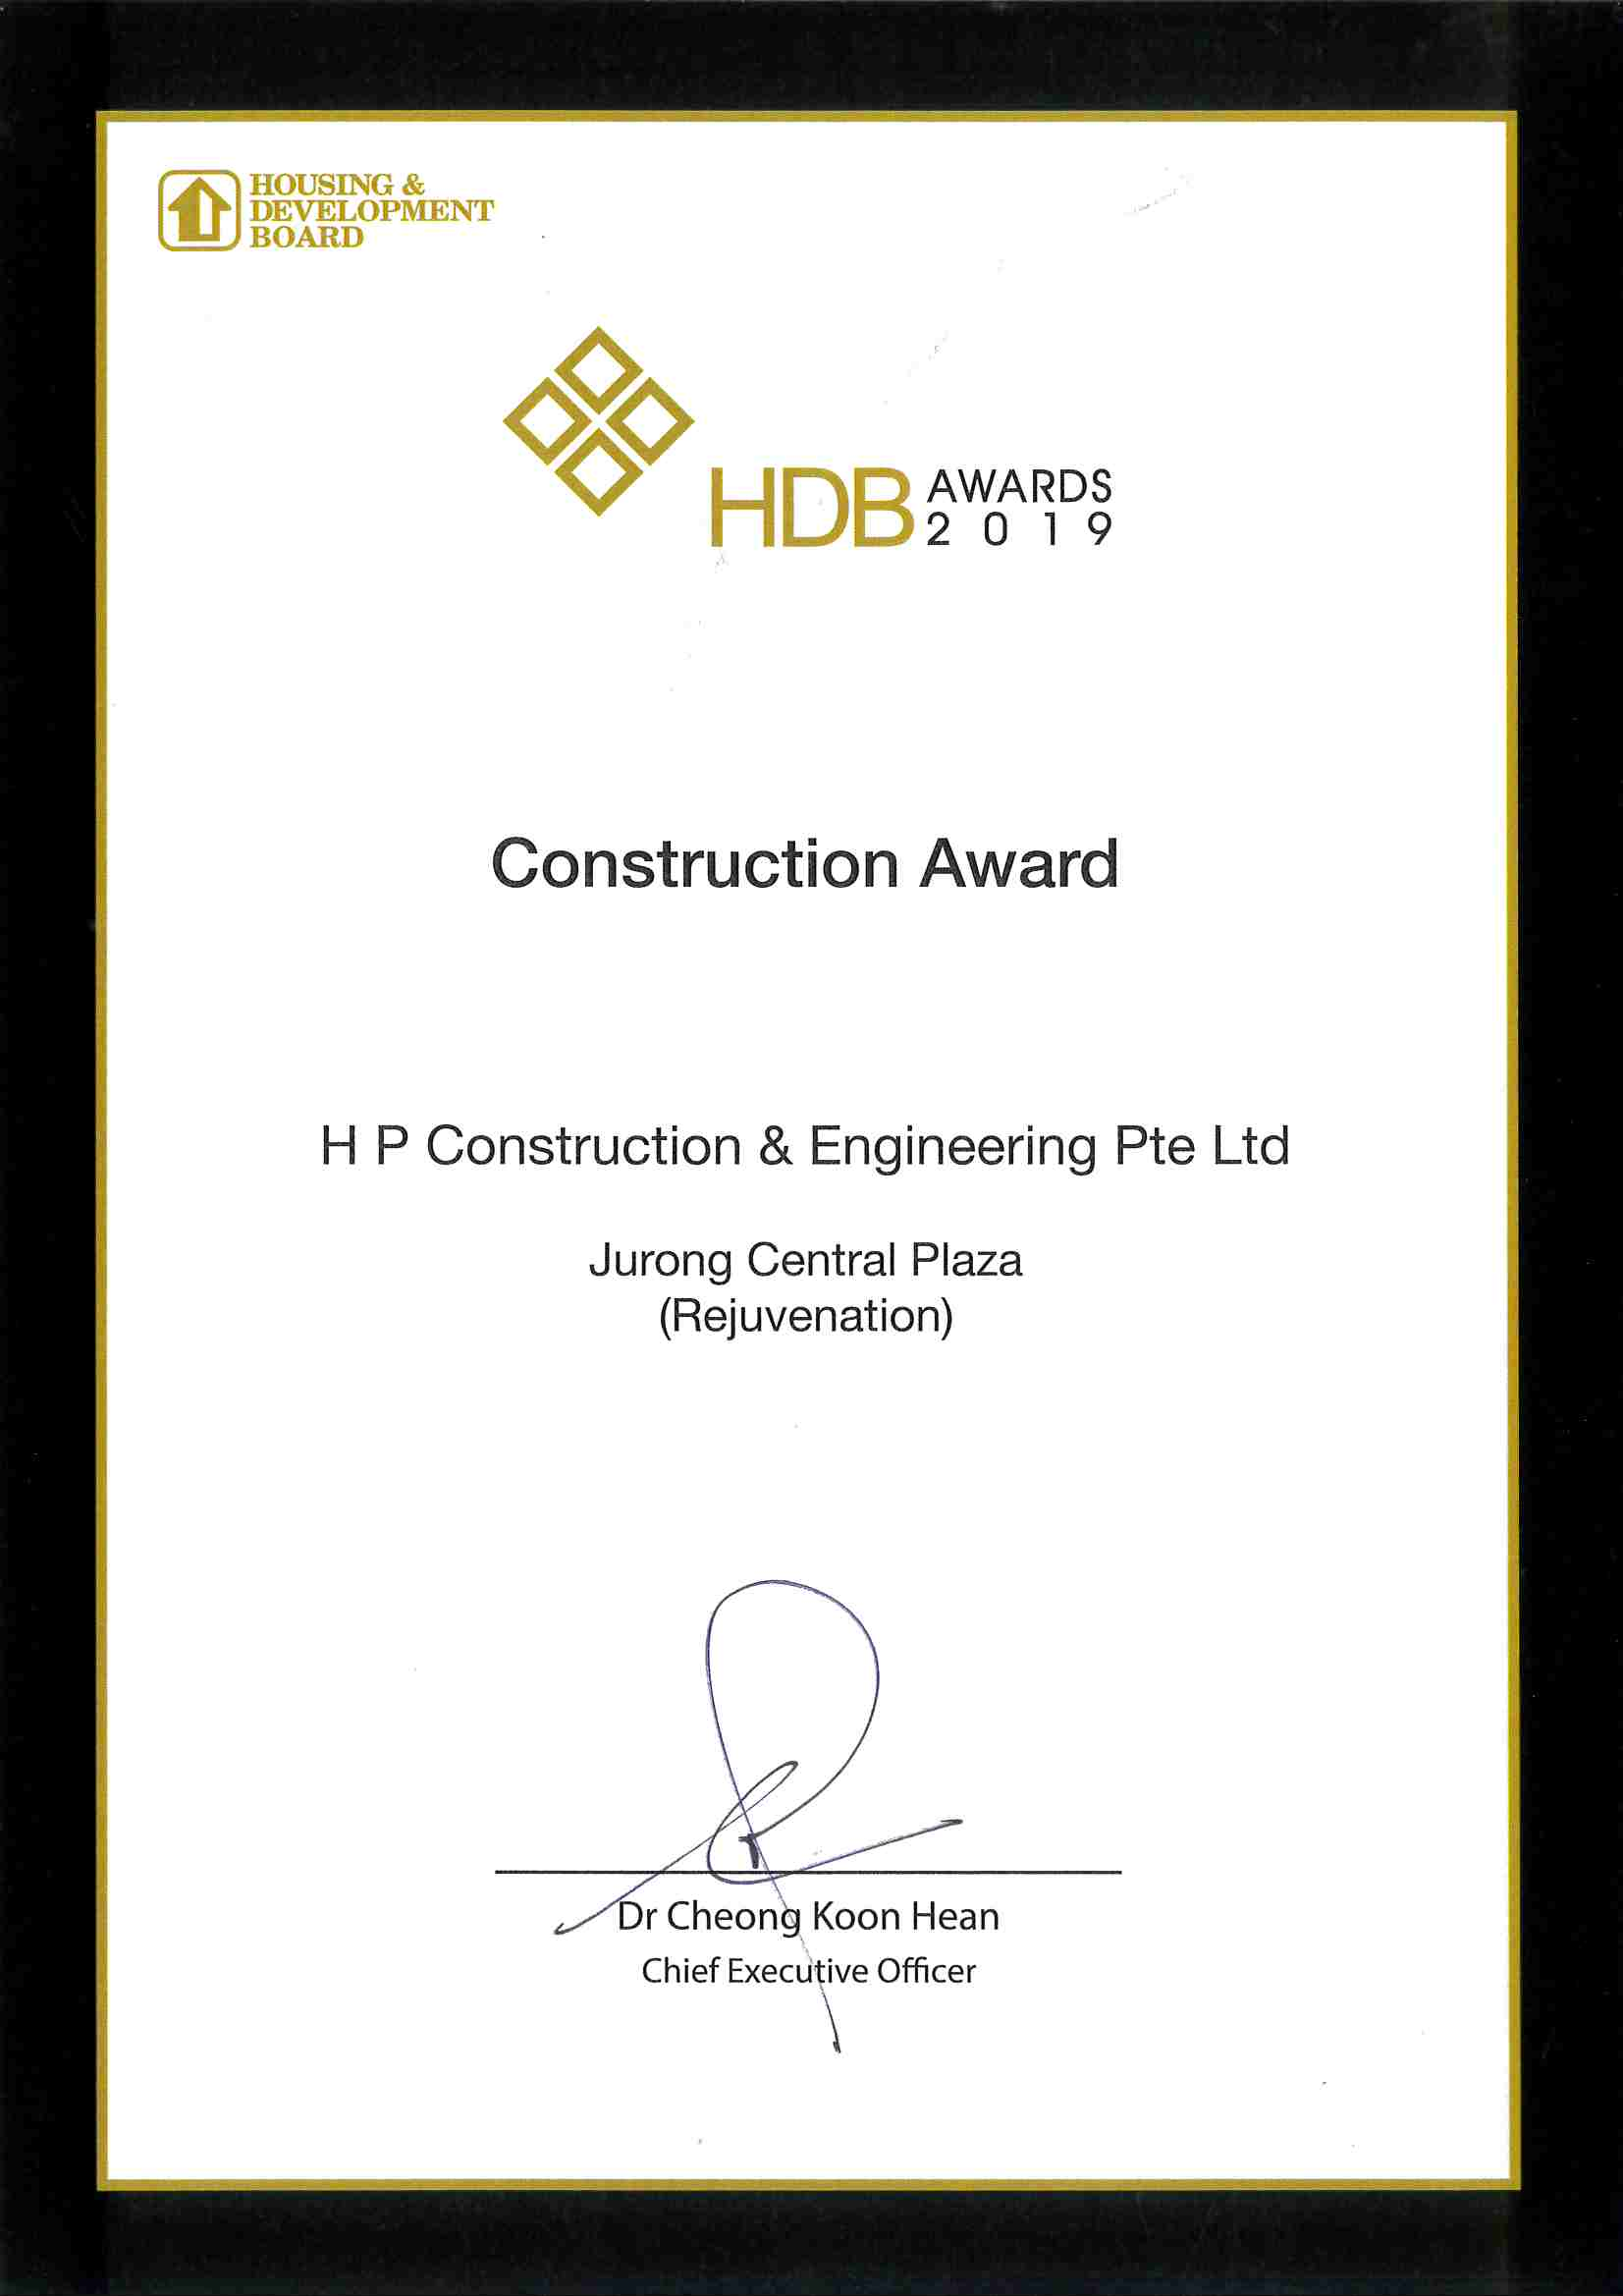 HDB Construction Awards 2019 JWN4NC